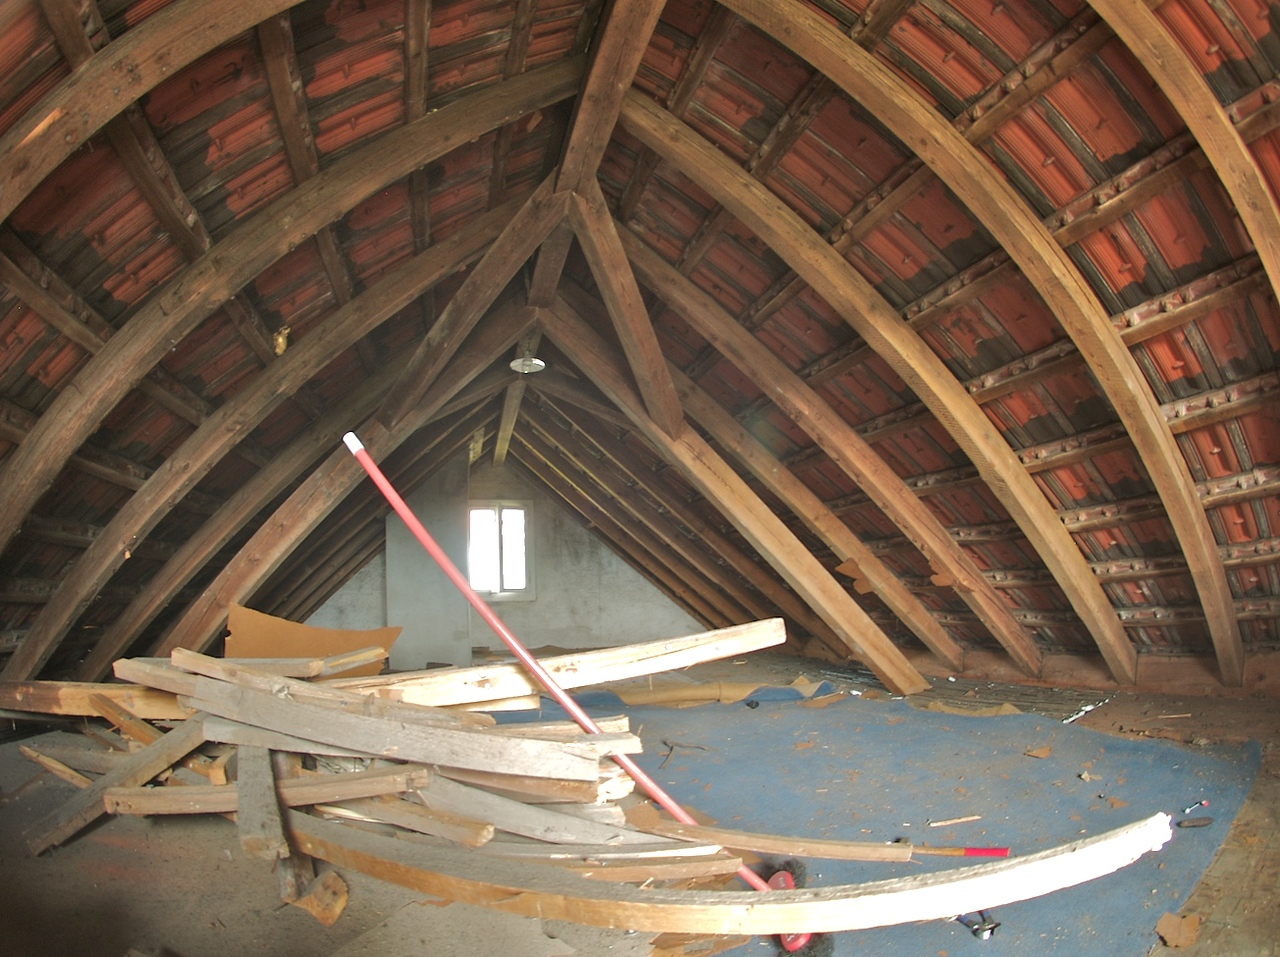 Monday 31st March 2008 - This is what the attic used to look like six months ago - I didnt have yn ultrawide lens then so this was taken with a fisheye lens hence it looks a bit funny